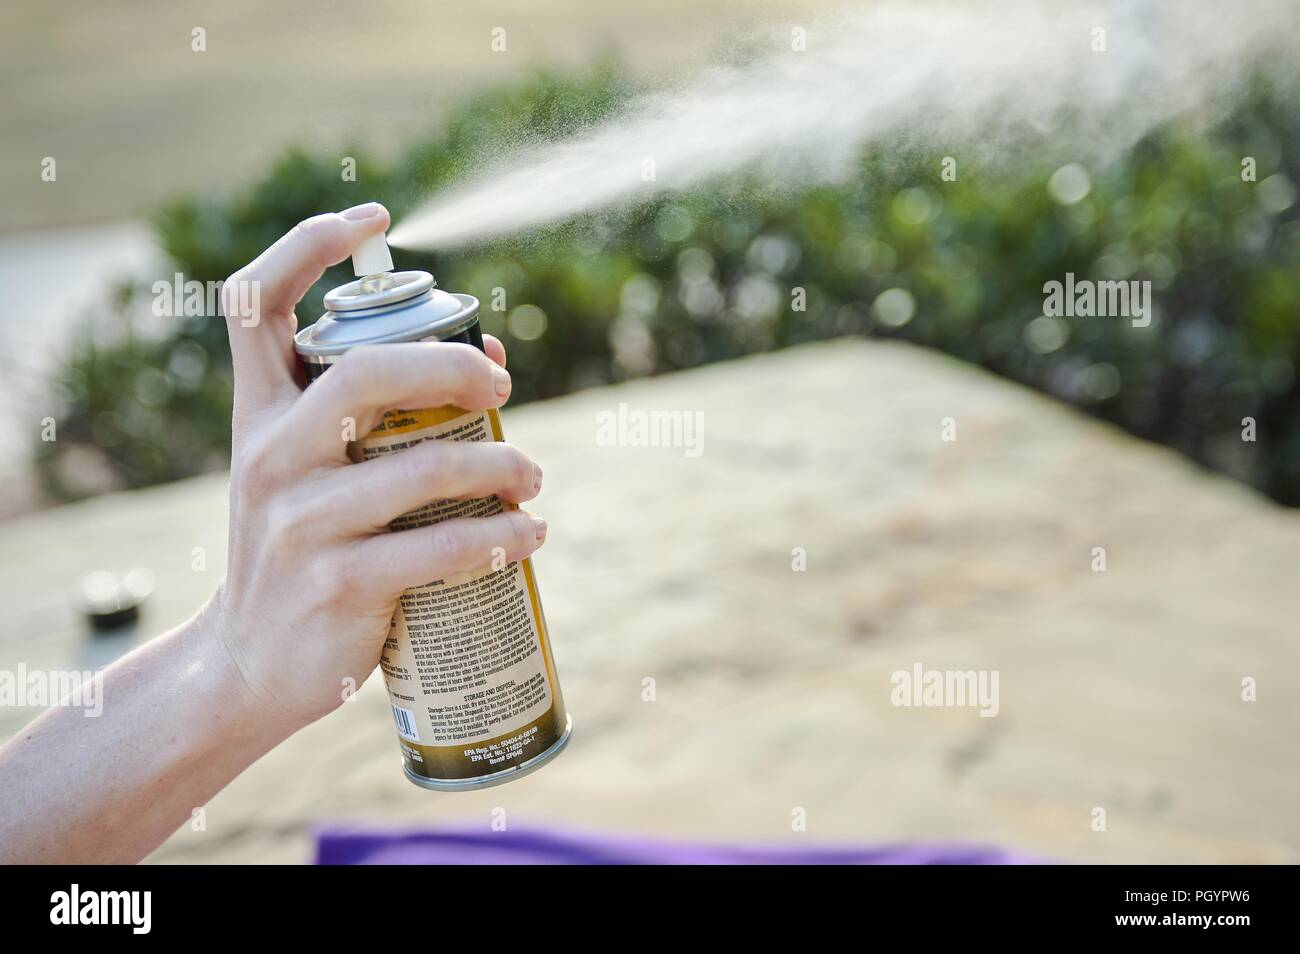 Women using EPA-registered insect repellent spray, 2016. Image courtesy Centers for Disease Control (CDC) / National Center for Emerging and Zoonotic Infectious Diseases (NCEZID). () - Stock Image